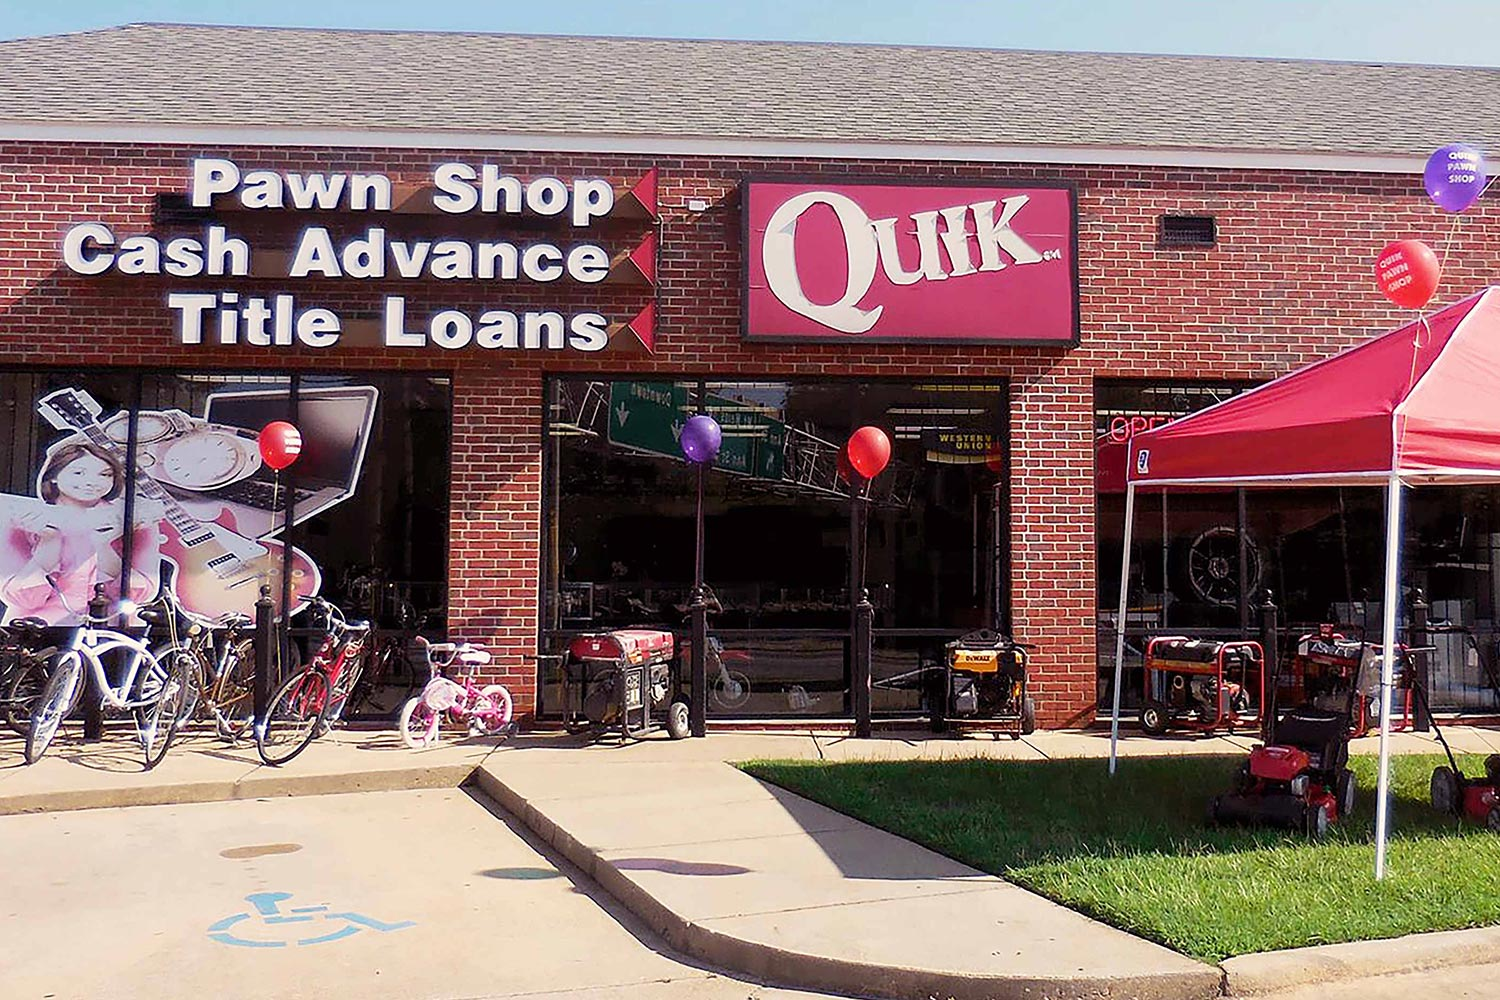 Buy sell pawns and get title pawn loans at madison avenue for Jewelry pawn shops birmingham al